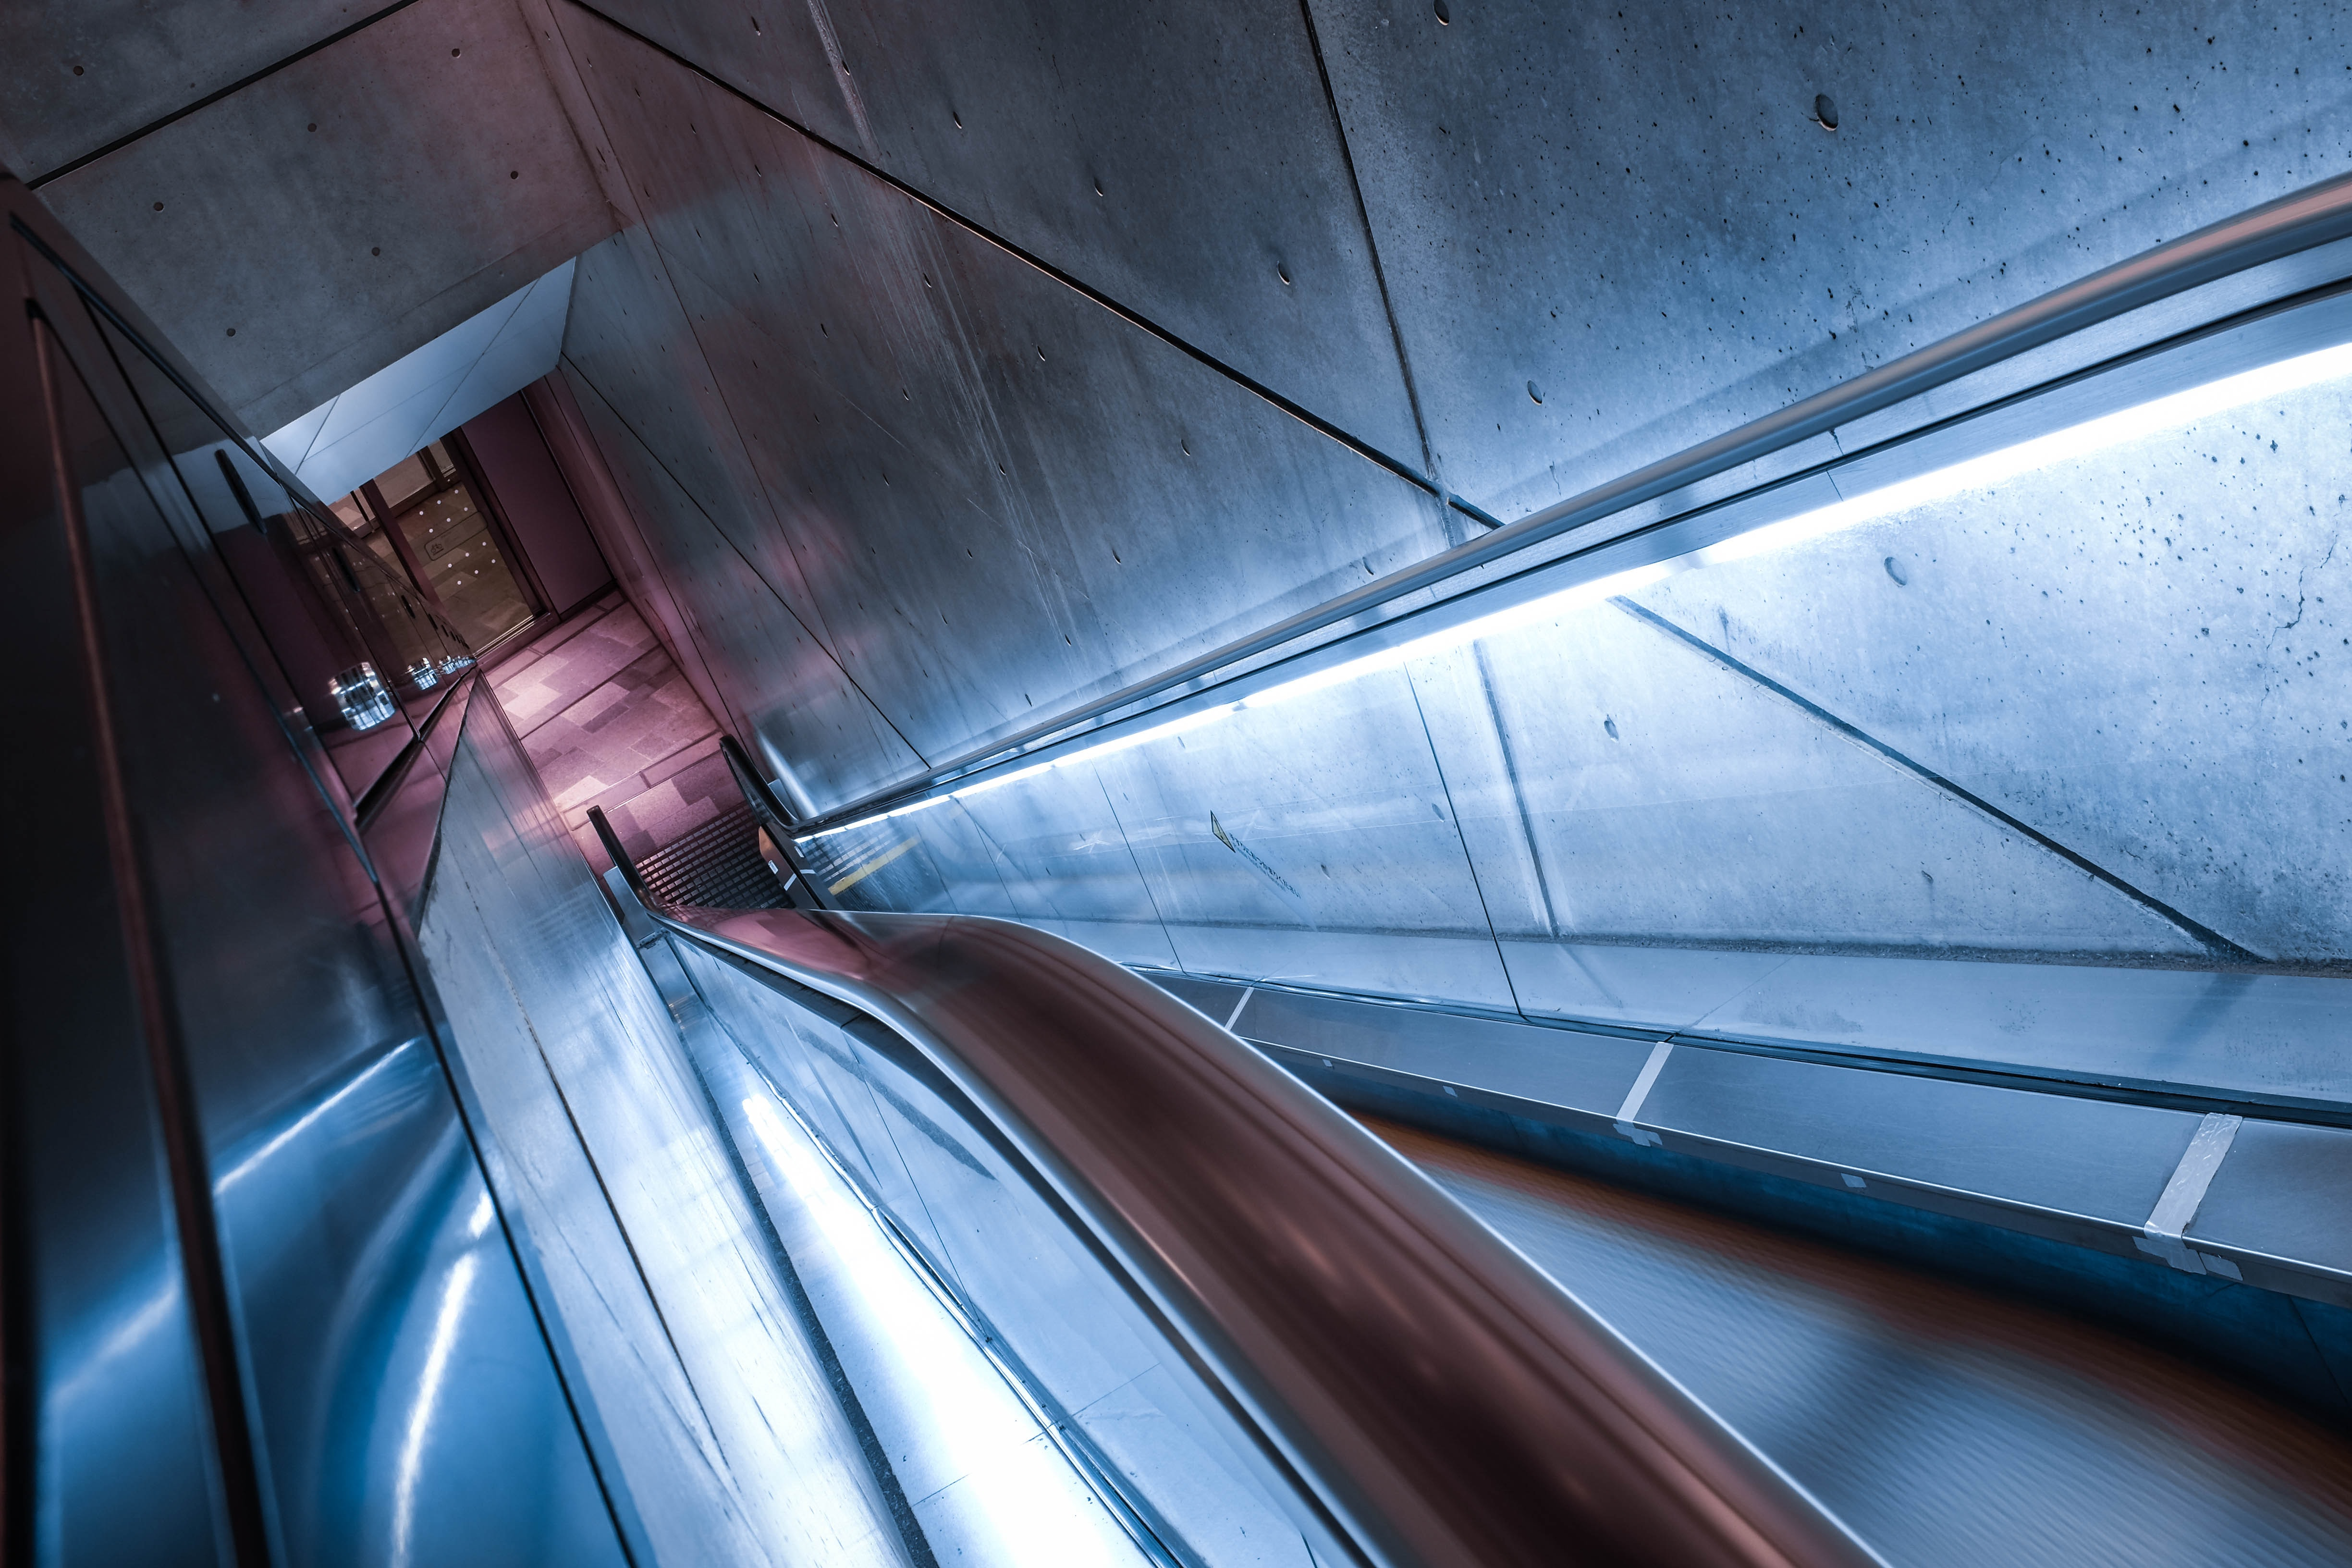 Looking down at an urban escalator enclosed in a concrete tunnel at Omotesando Hills